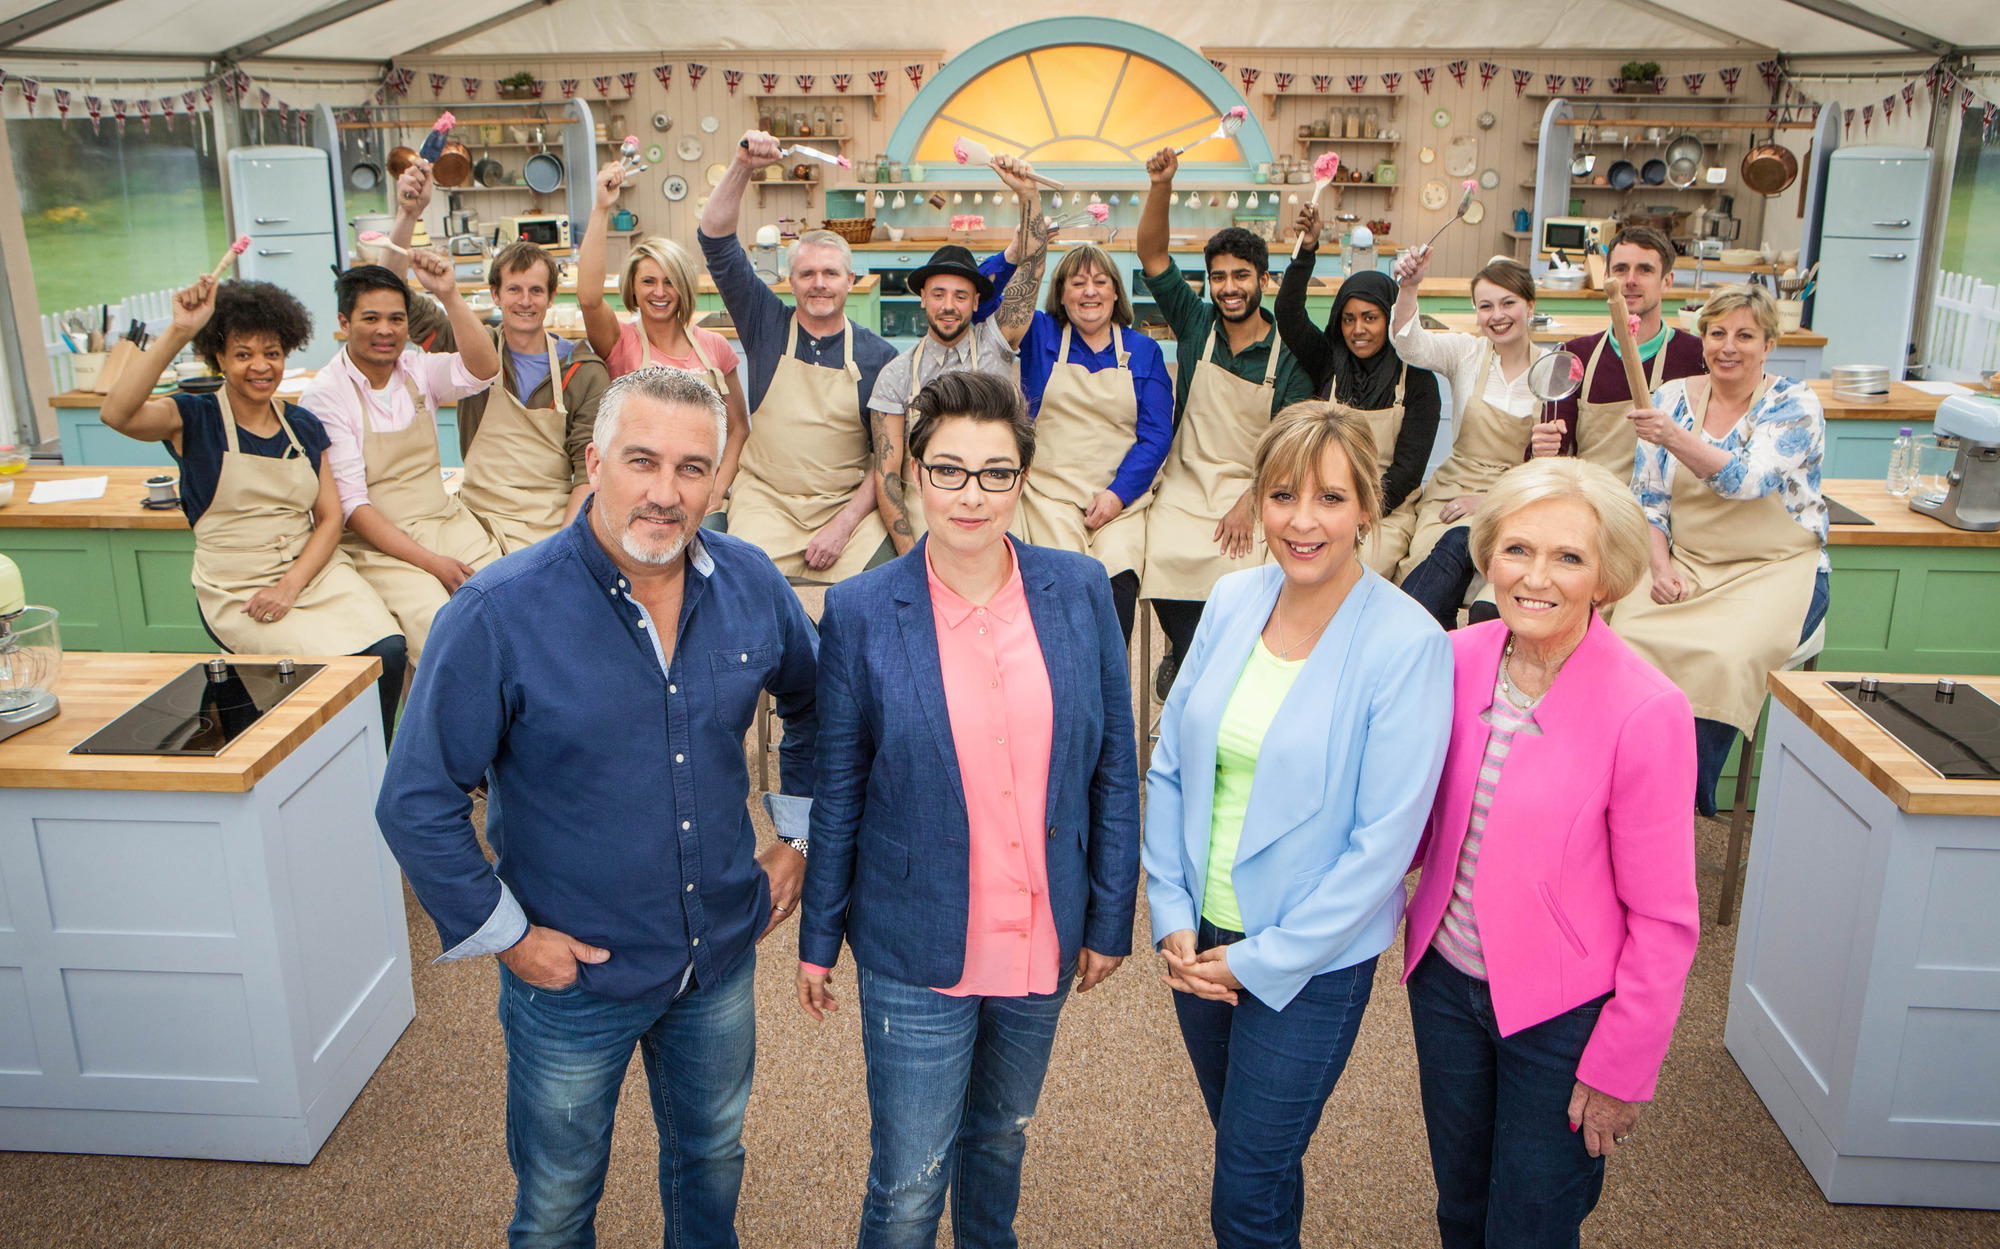 EC: All 162 Breakfast Items Made on 'The Great British Bake Off'